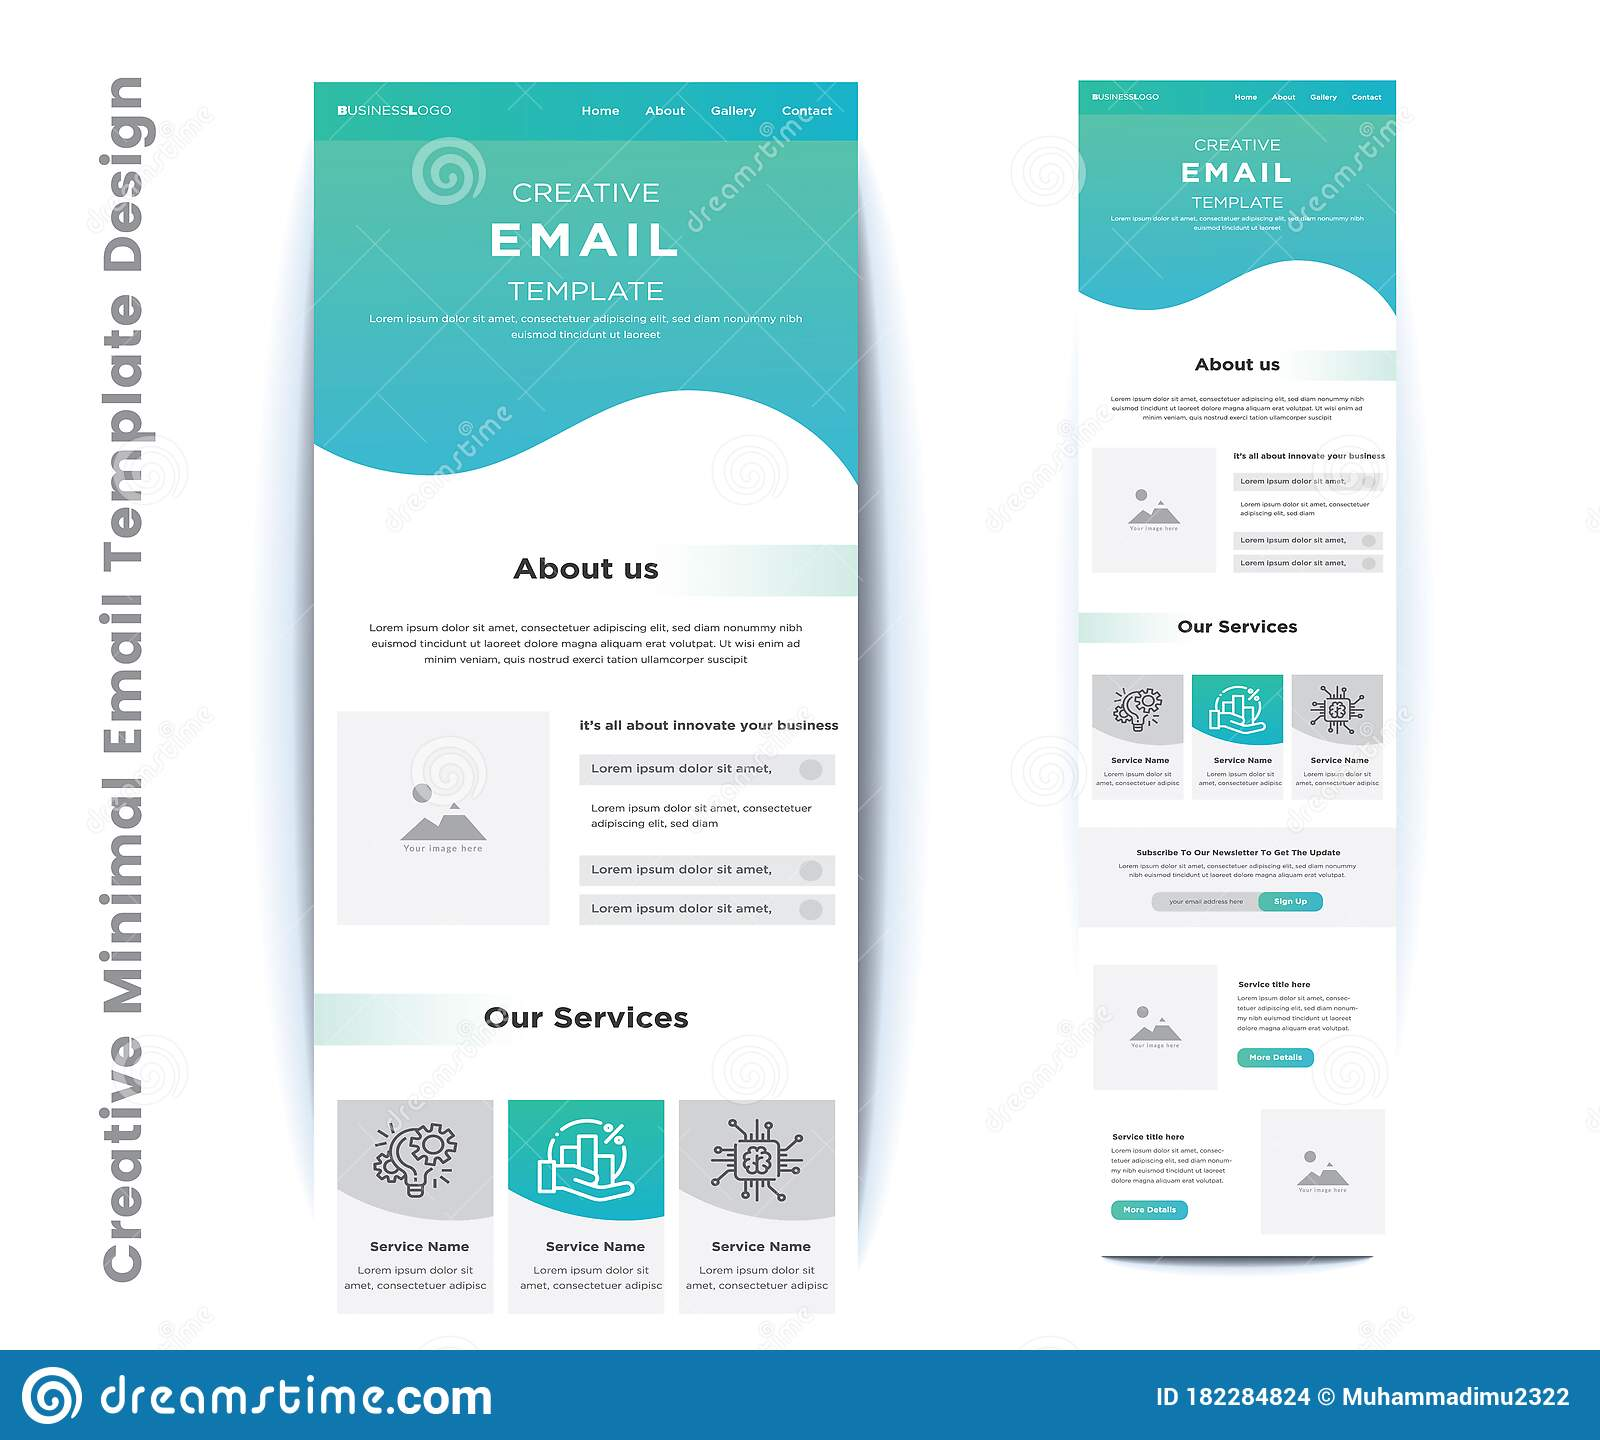 Spots with this travel newsletter template. Creative Minimal Email Template Design Stock Vector Illustration Of Business Campaign 182284824